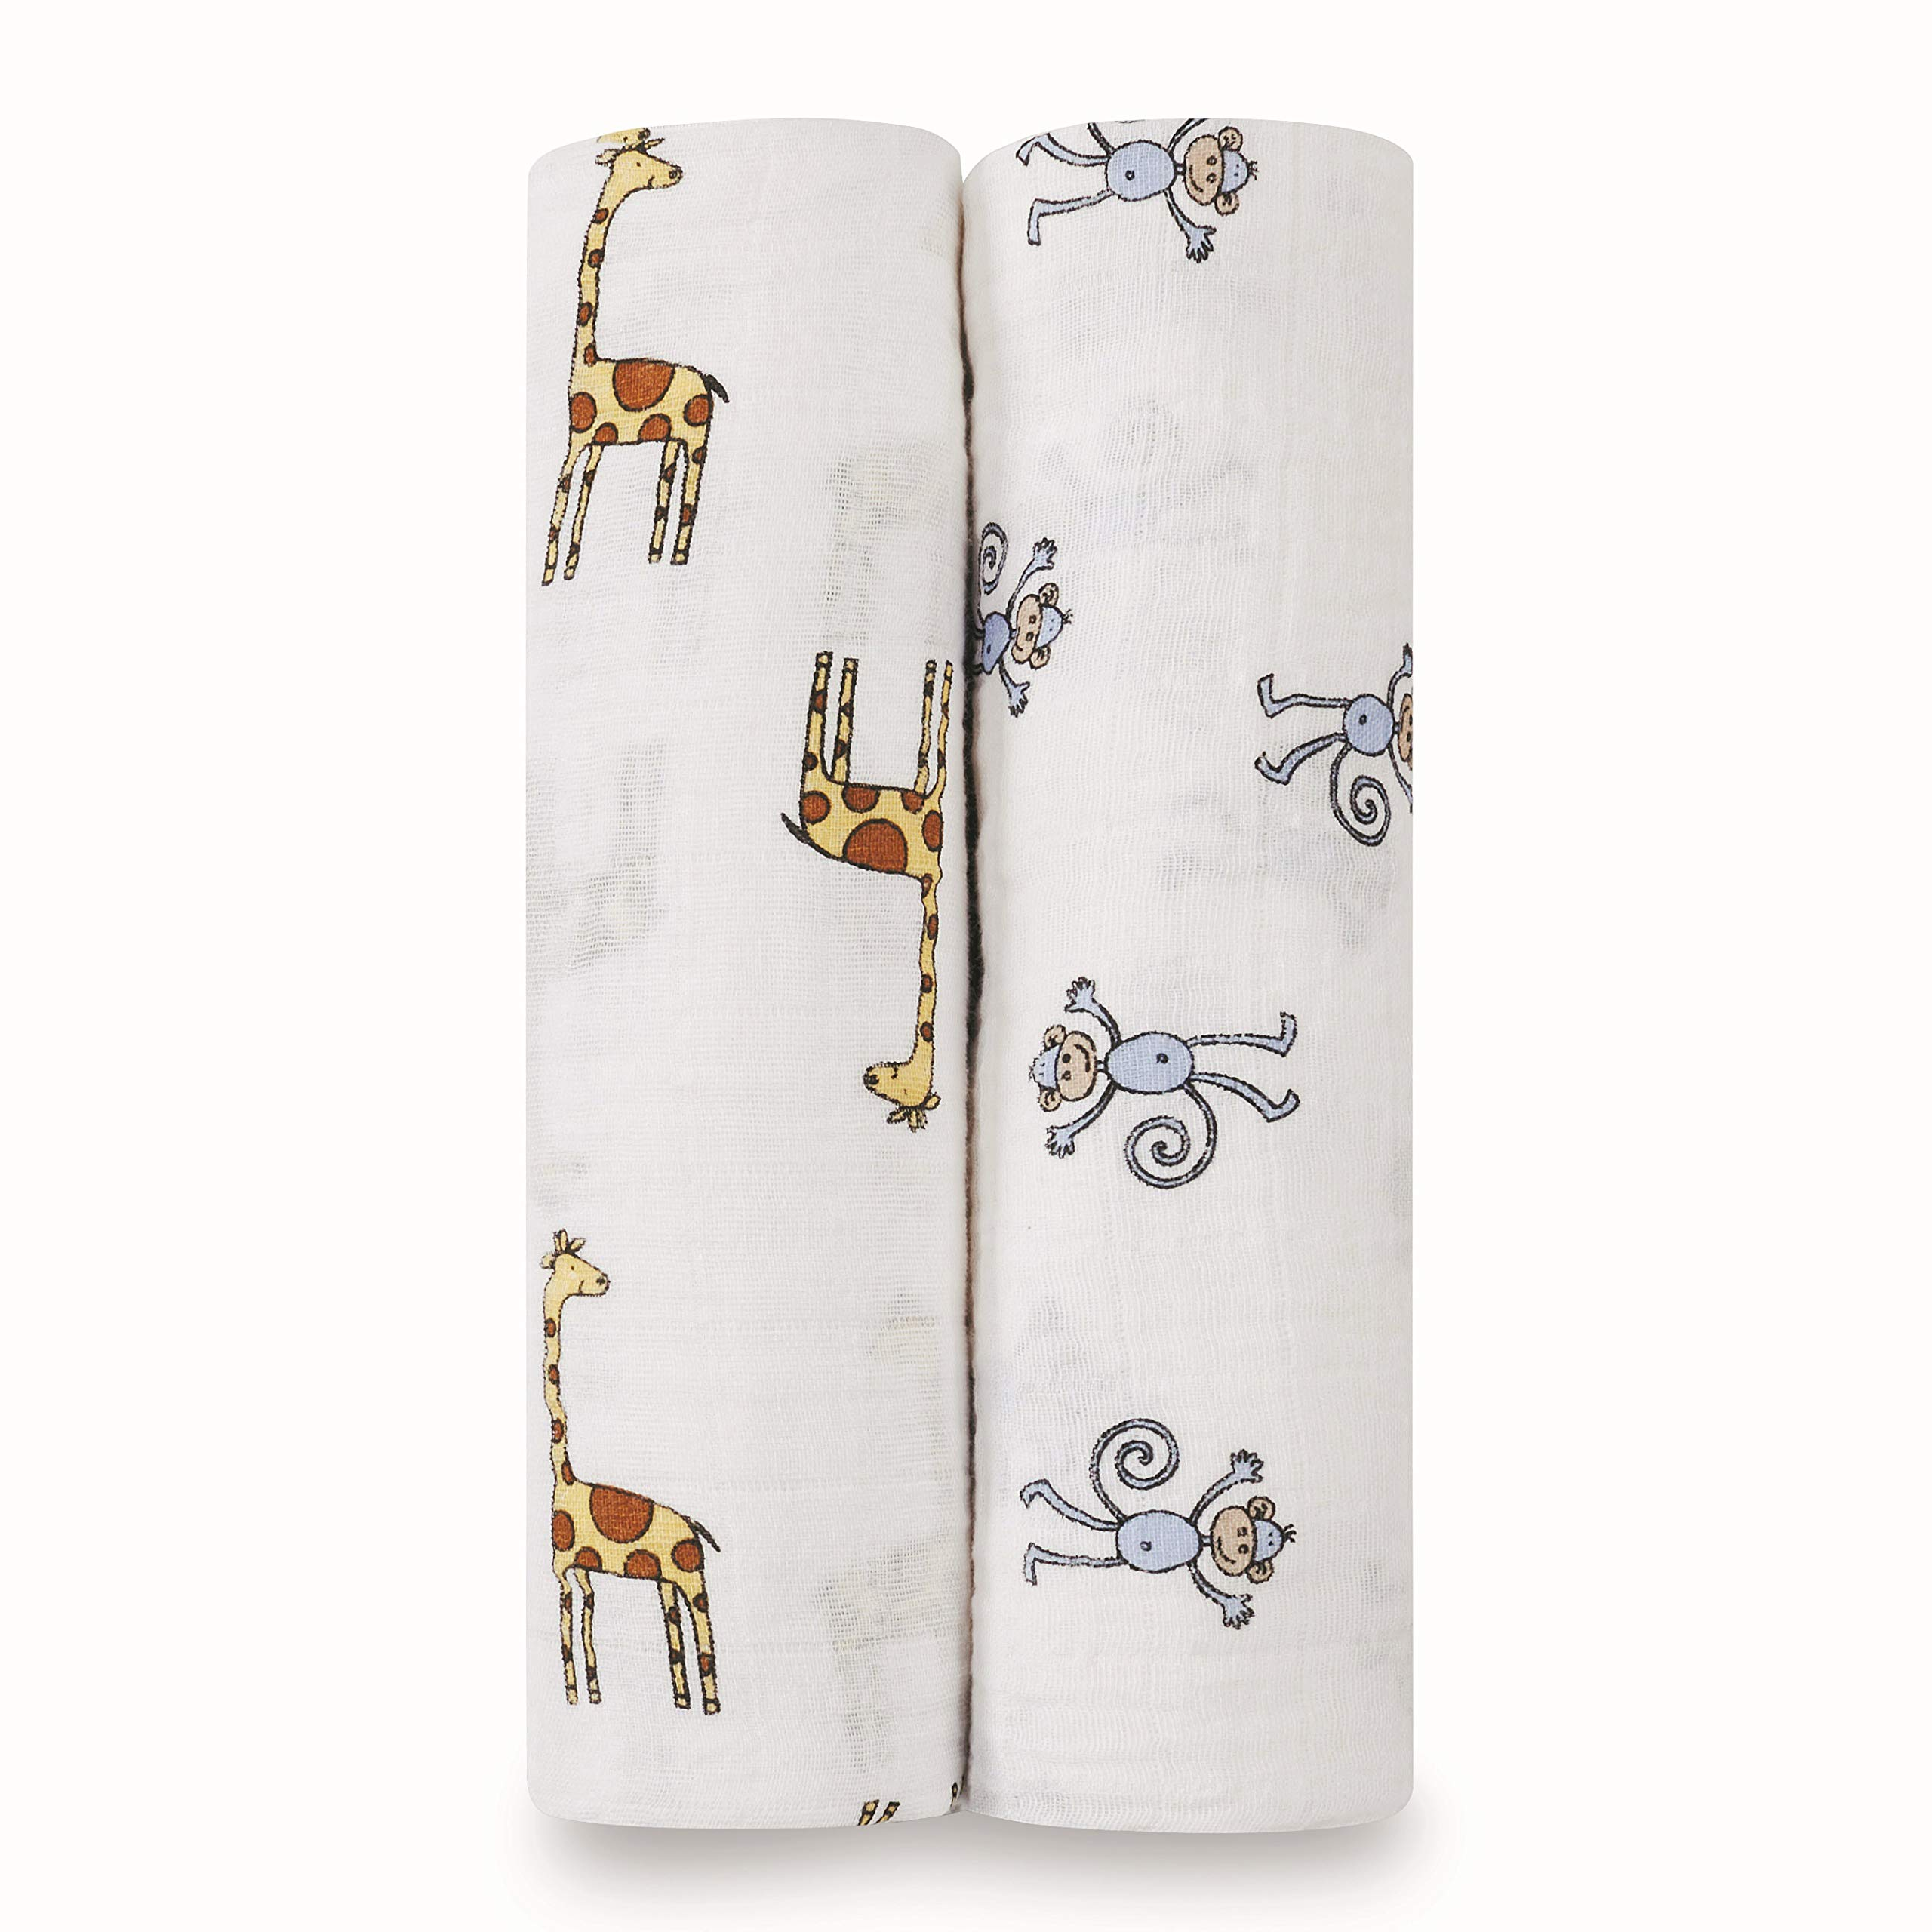 aden + anais Swaddle Blanket   Boutique Muslin Blankets for Girls & Boys   Baby Receiving Swaddles   Ideal Newborn & Infant Swaddling Set   Perfect Shower Gifts, 2 Pack, Jungle Jam